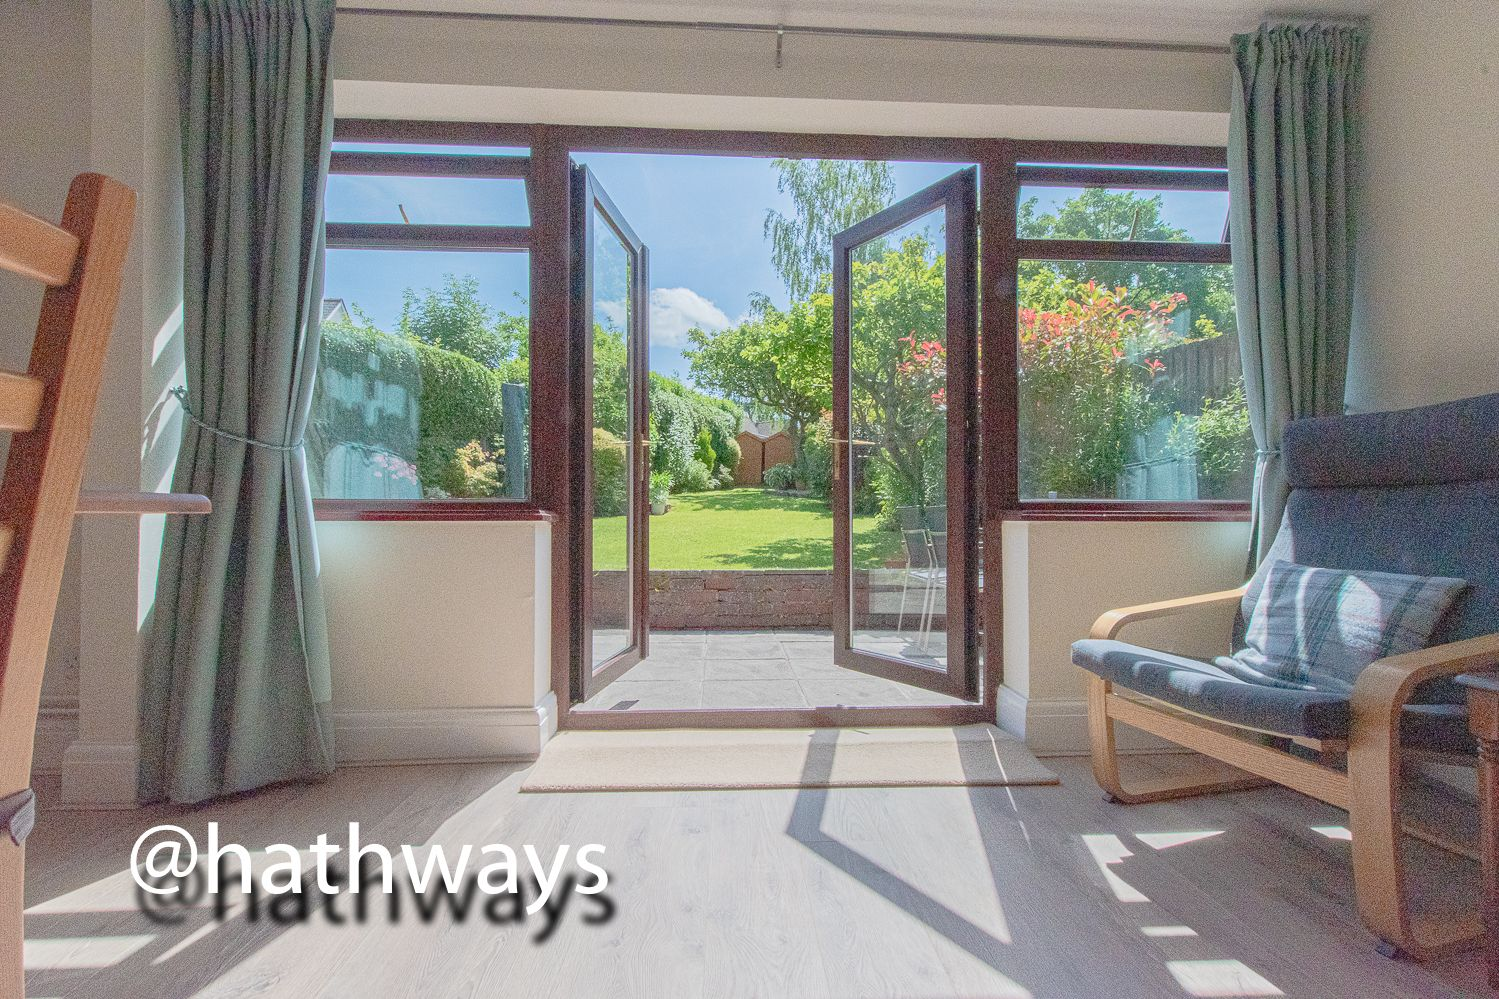 4 bed house for sale in Ashford Close South  - Property Image 21